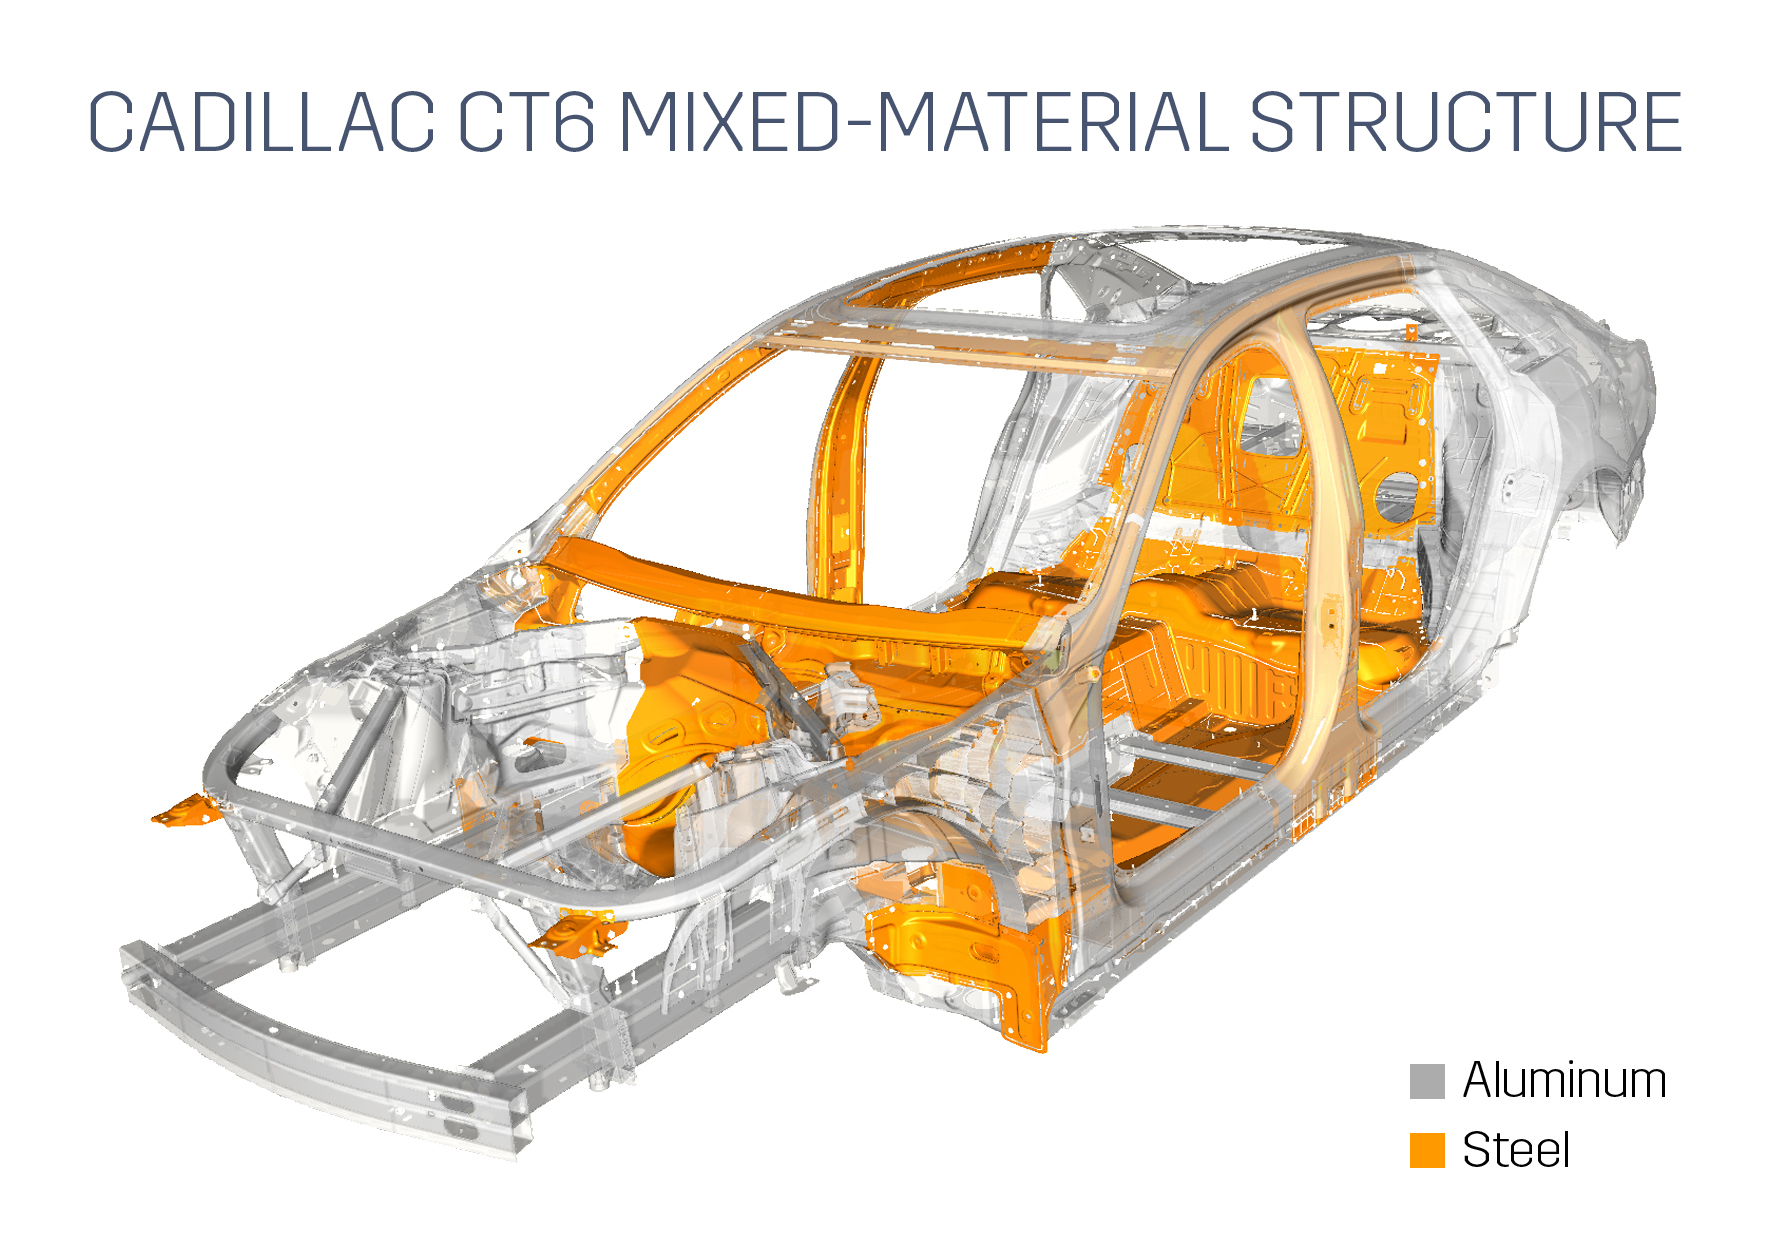 Gm To Have Aluminum Repair Auto Body Network For Cadillac